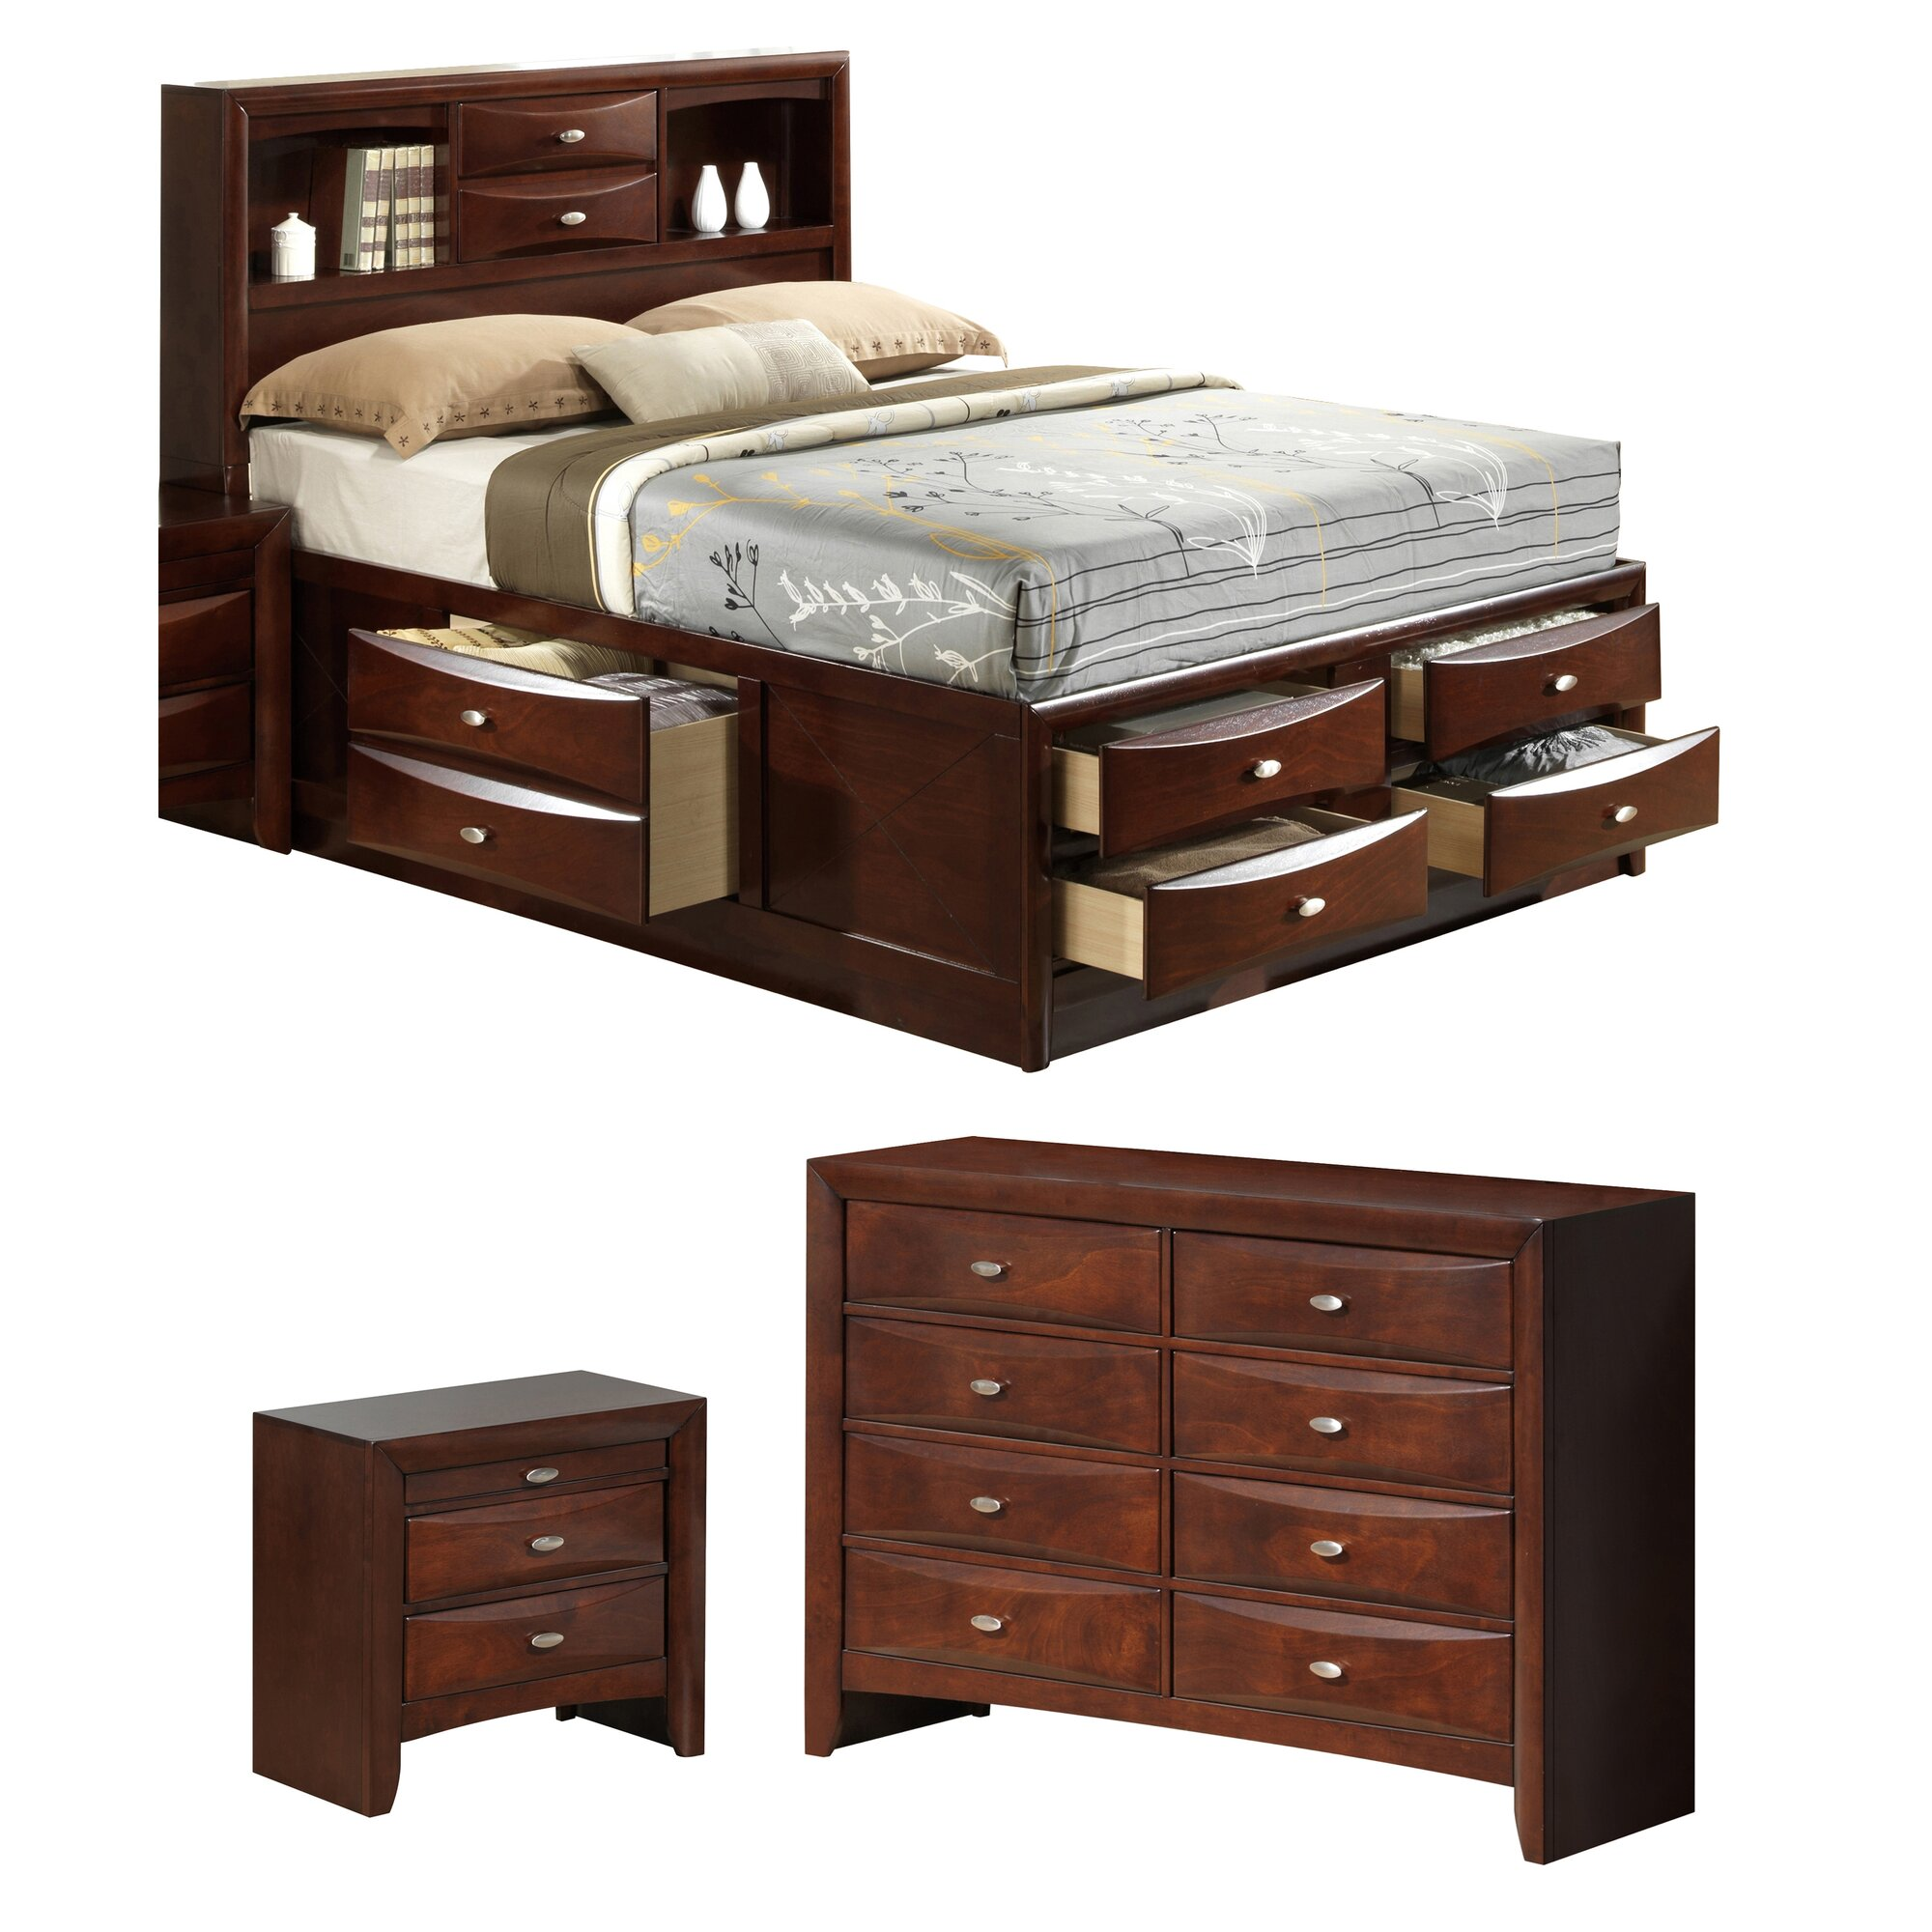 Global furniture usa linda platform customizable bedroom for Bedroom furniture usa